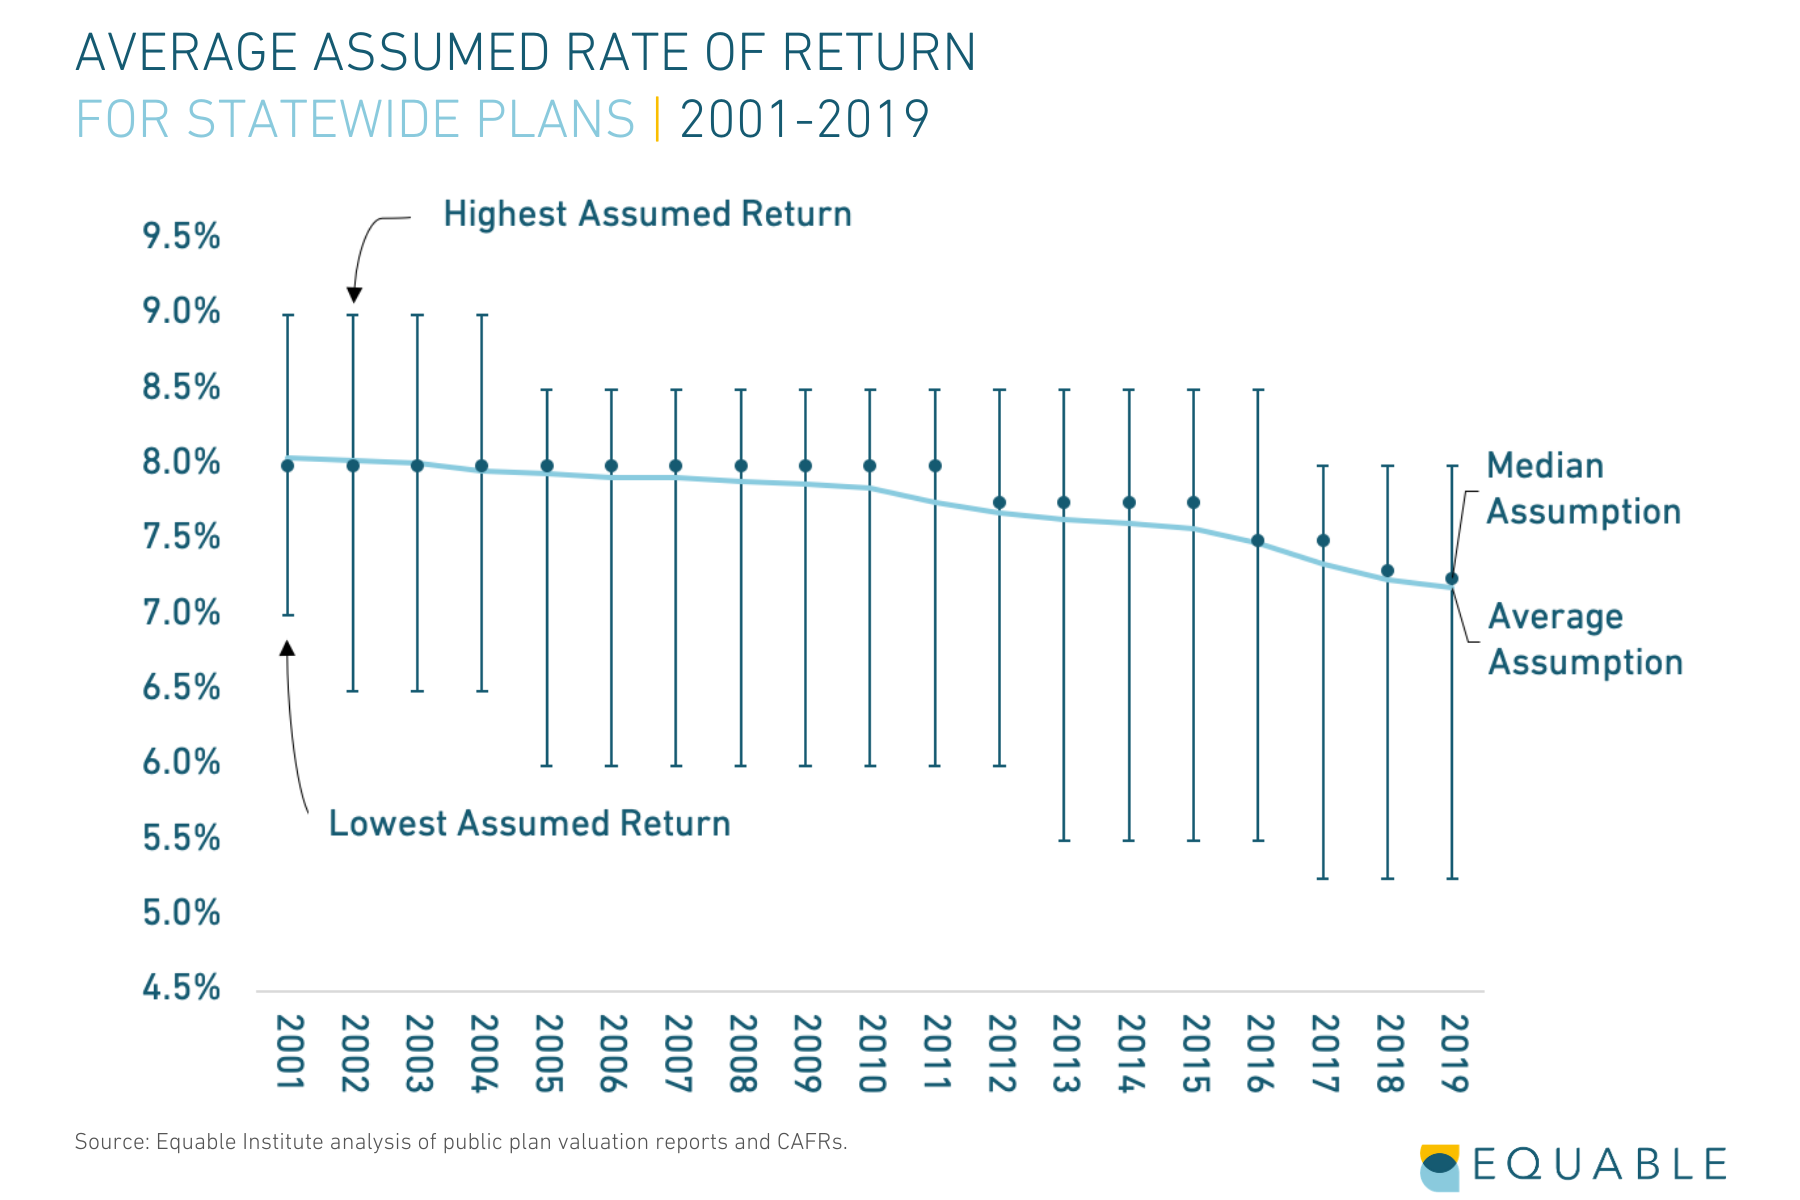 State of Pensions_Report Graphic_Average Assumed Rate of Return for Public Pension Funds 2001-2019